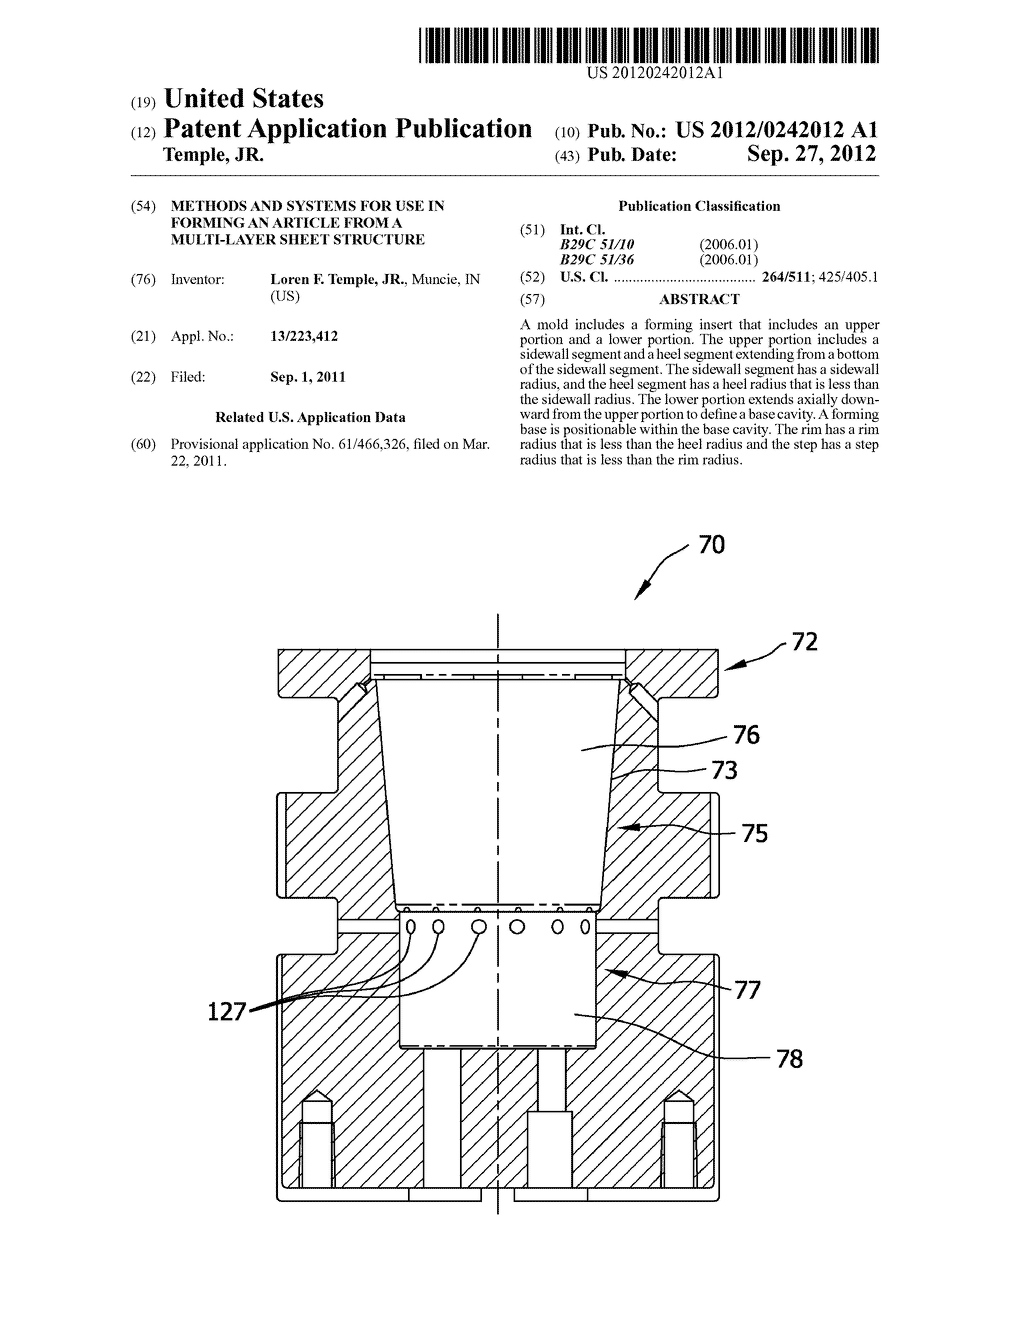 METHODS AND SYSTEMS FOR USE IN FORMING AN ARTICLE FROM A MULTI-LAYER SHEET     STRUCTURE - diagram, schematic, and image 01